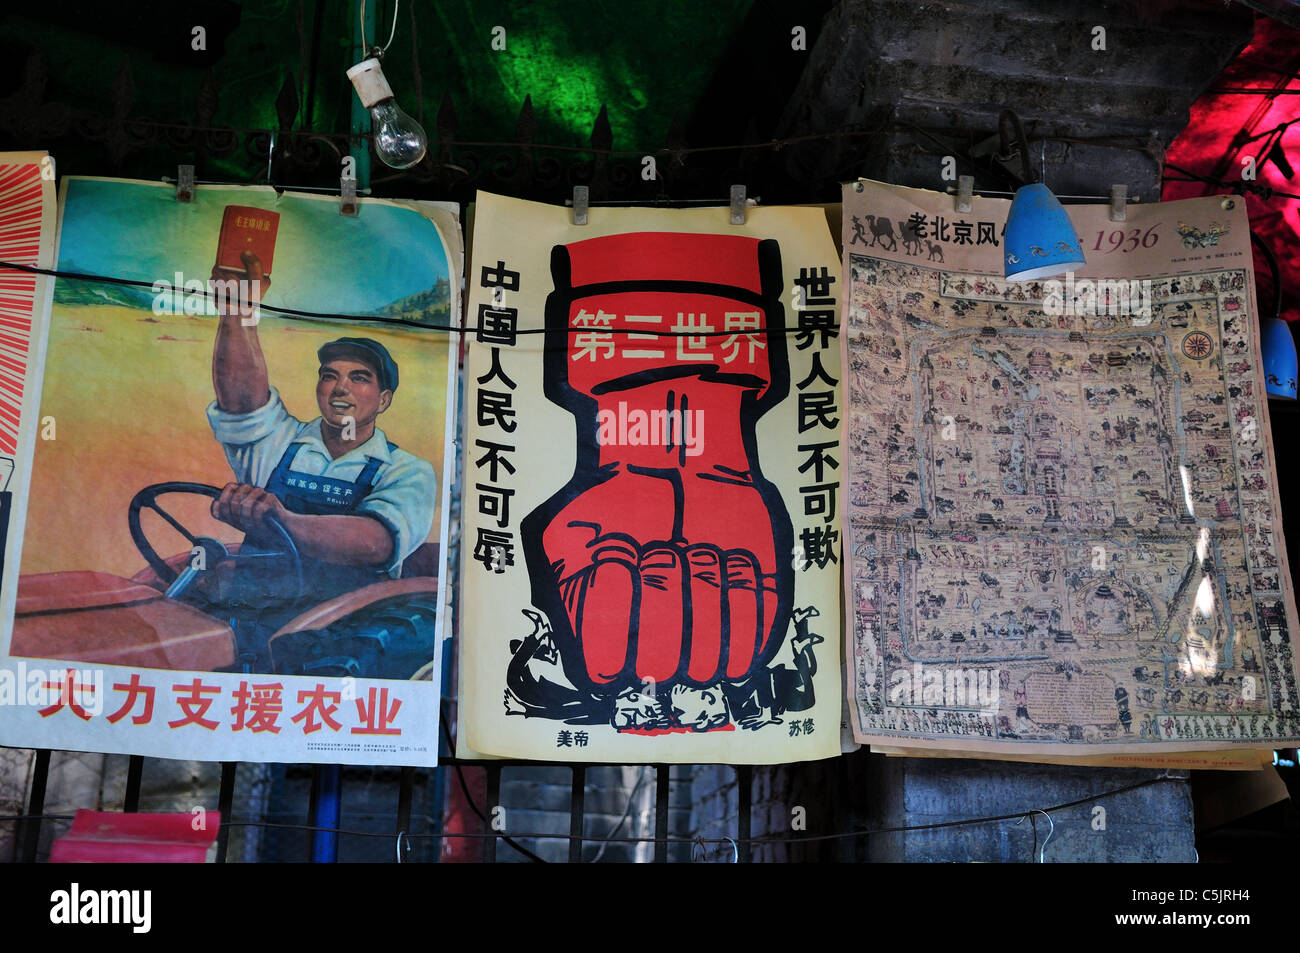 Cultural Revolution era (1960's to 70's) propaganda posters are for sale in a stand. Beijing, China. - Stock Image